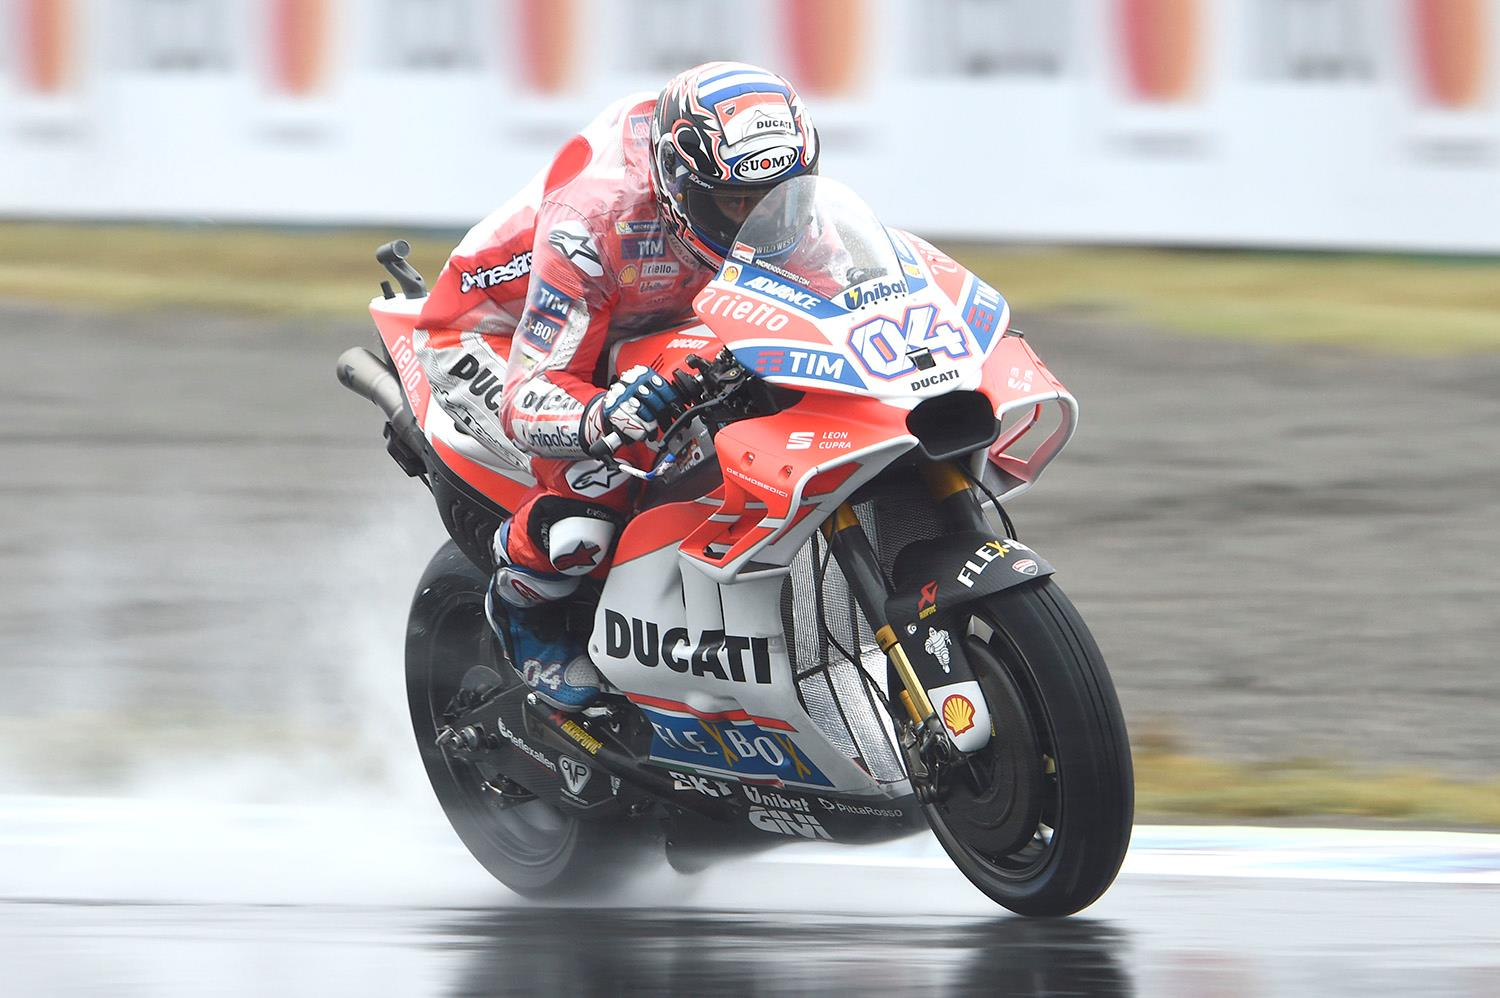 Dovizioso beats Marquez in MotoGP thriller at Motegi